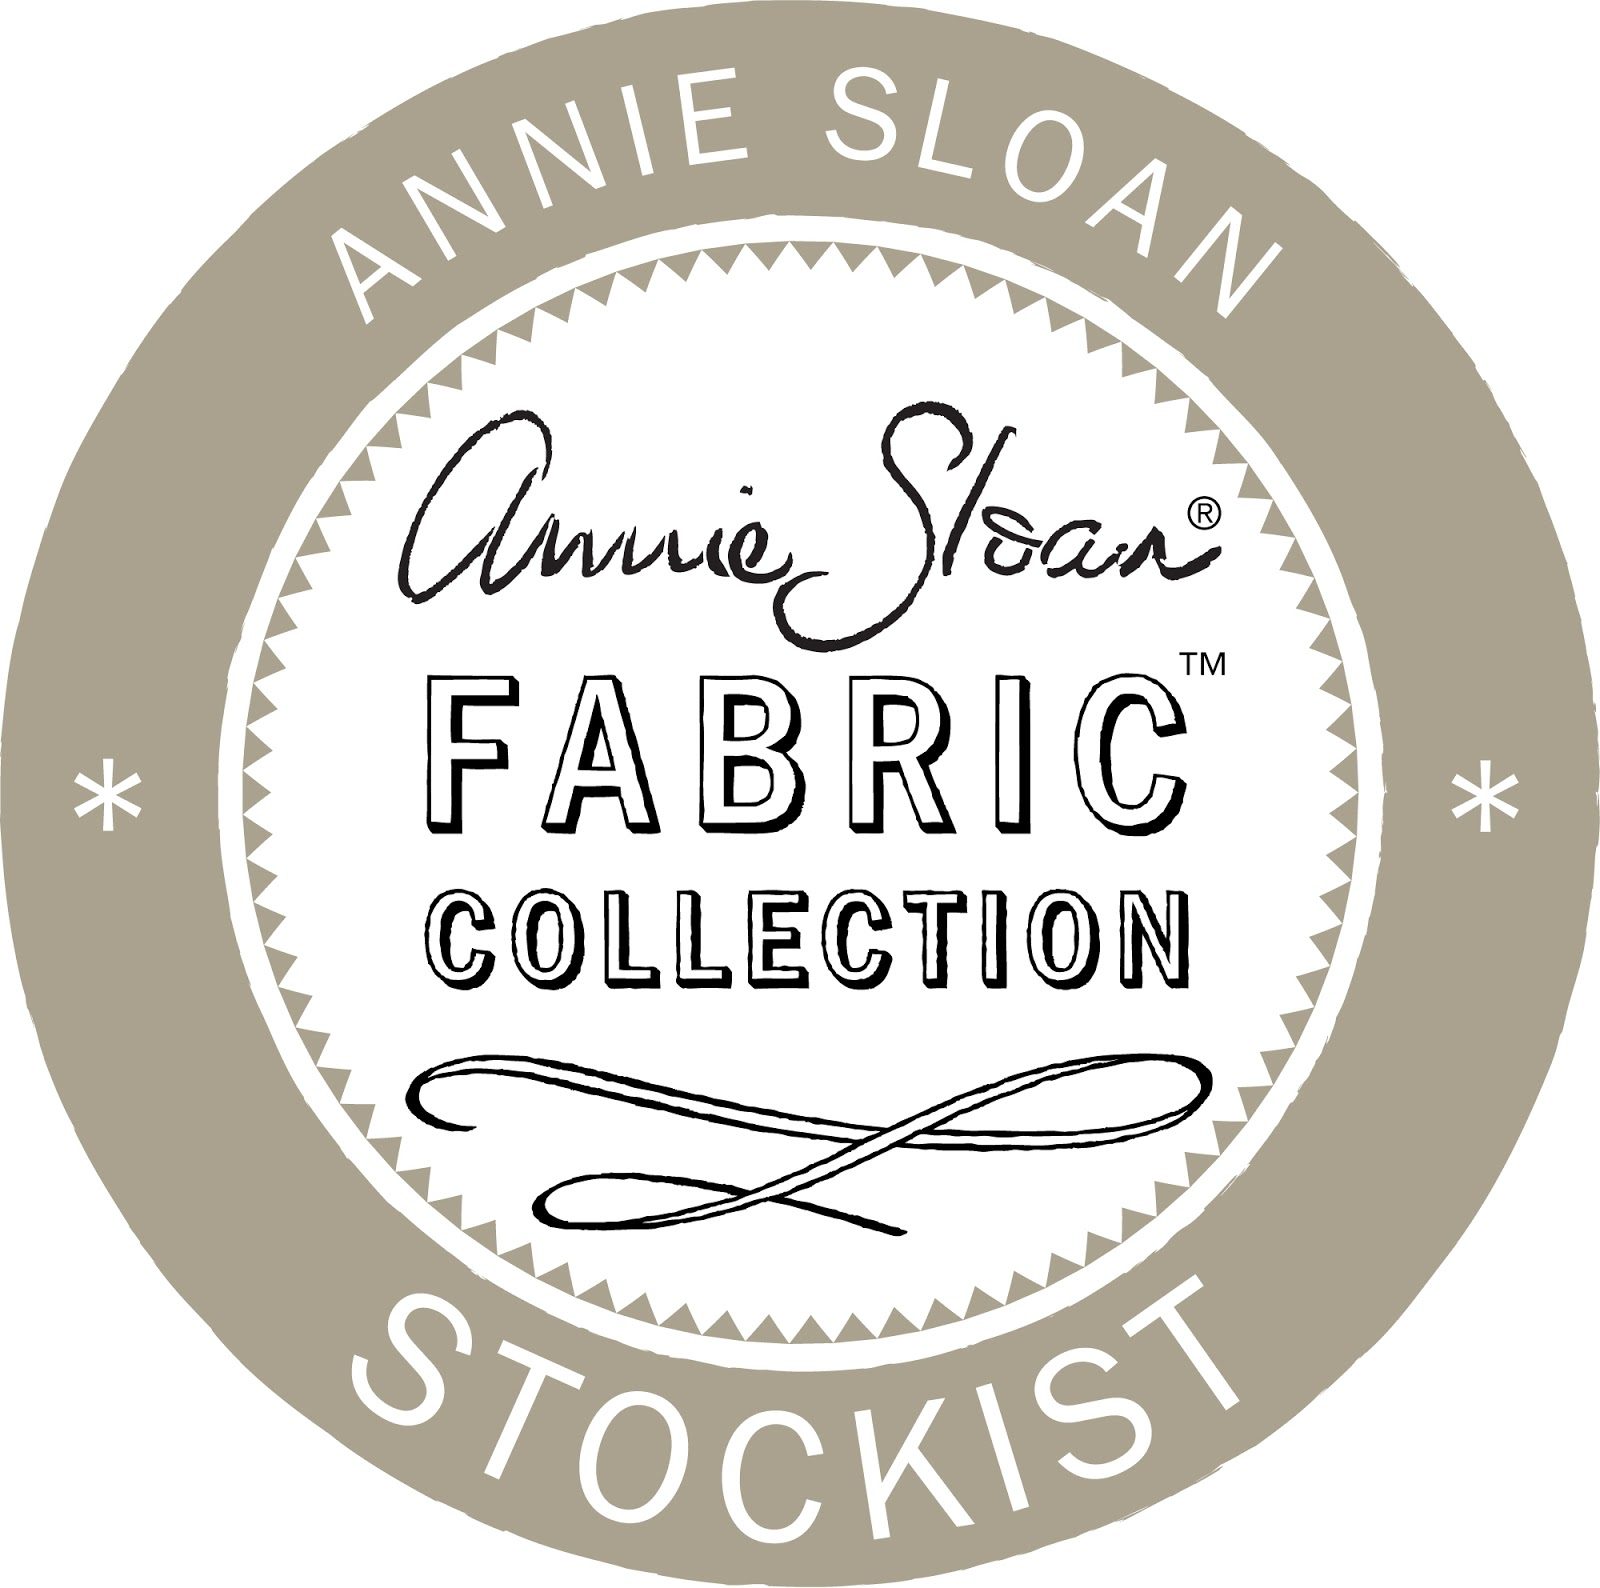 annie sloan logo - photo #6